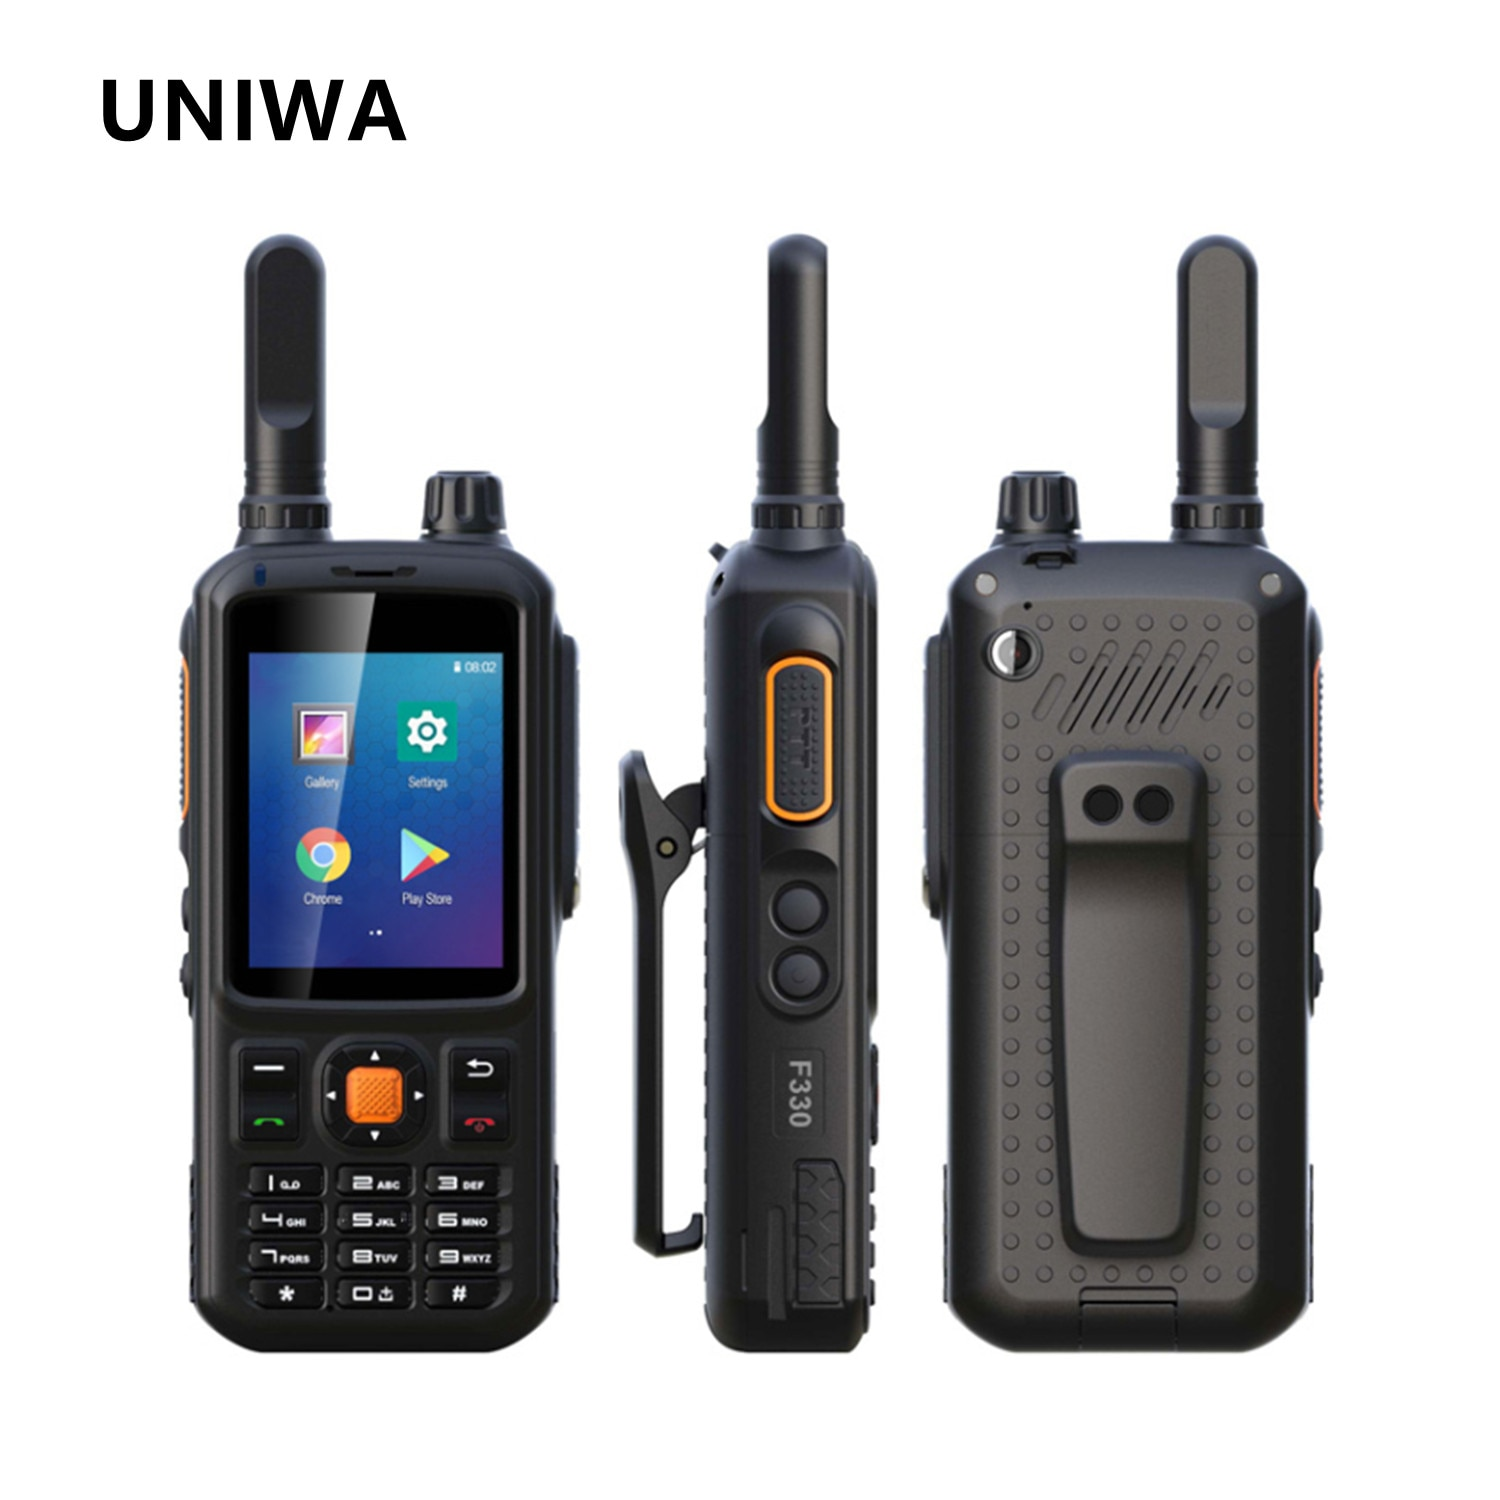 UNIWA F330 Zello Walkie Talkie Mobile Phone 1GB 8GB 3500mAh 2.4'' Touch Screen Quad Core Android 7.0 4G Smartphone Support NFC